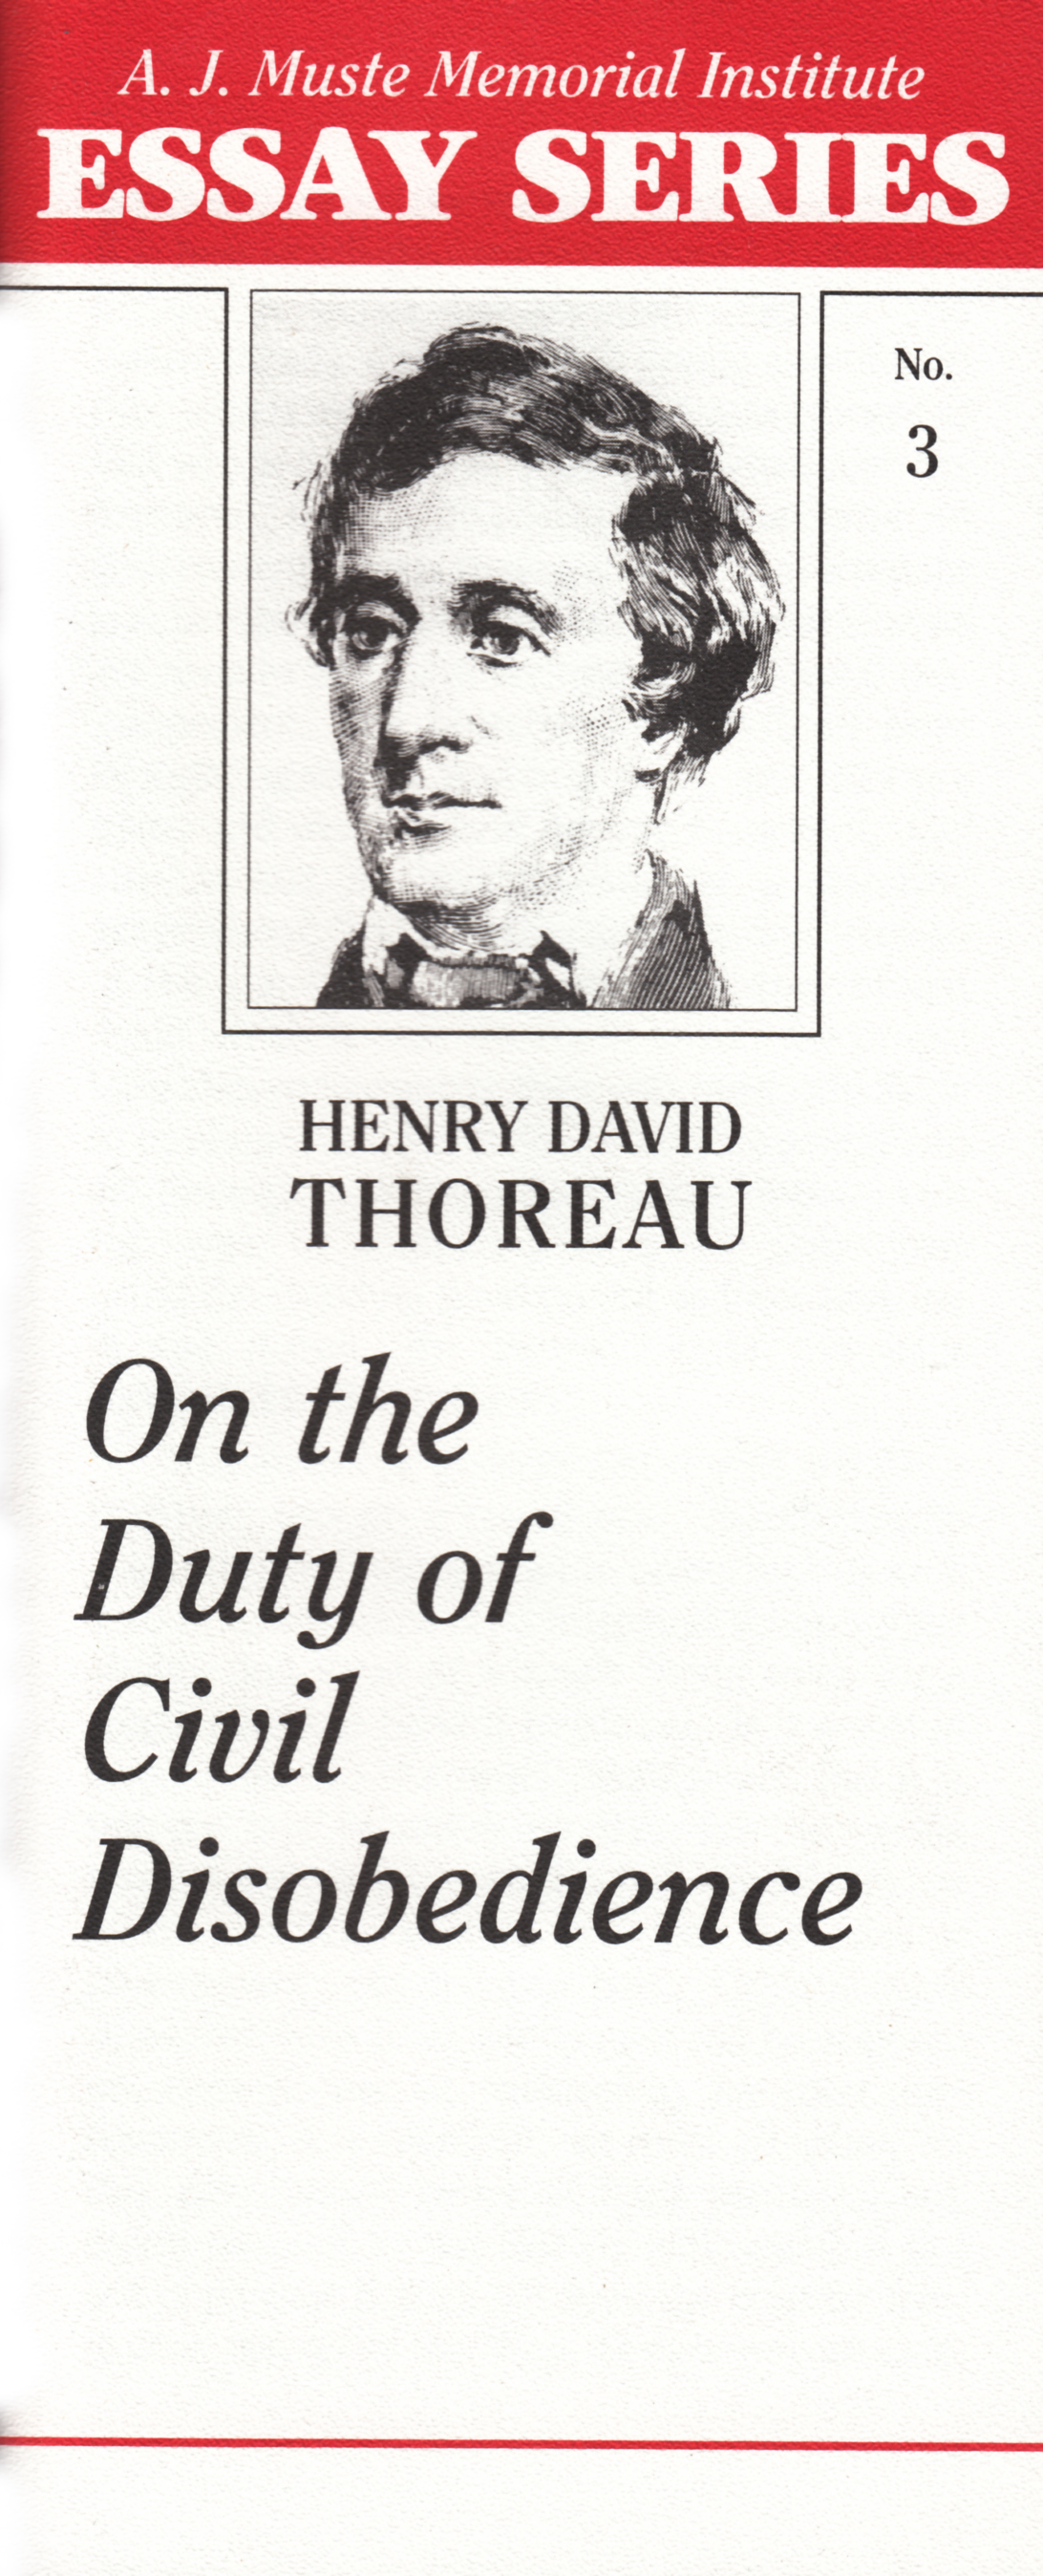 thoreau essays annotated Slavery: annotated bibliography  in this essay, thoreau expressed disbelief that he was asked to speak about abolition in nebraska when right there in .